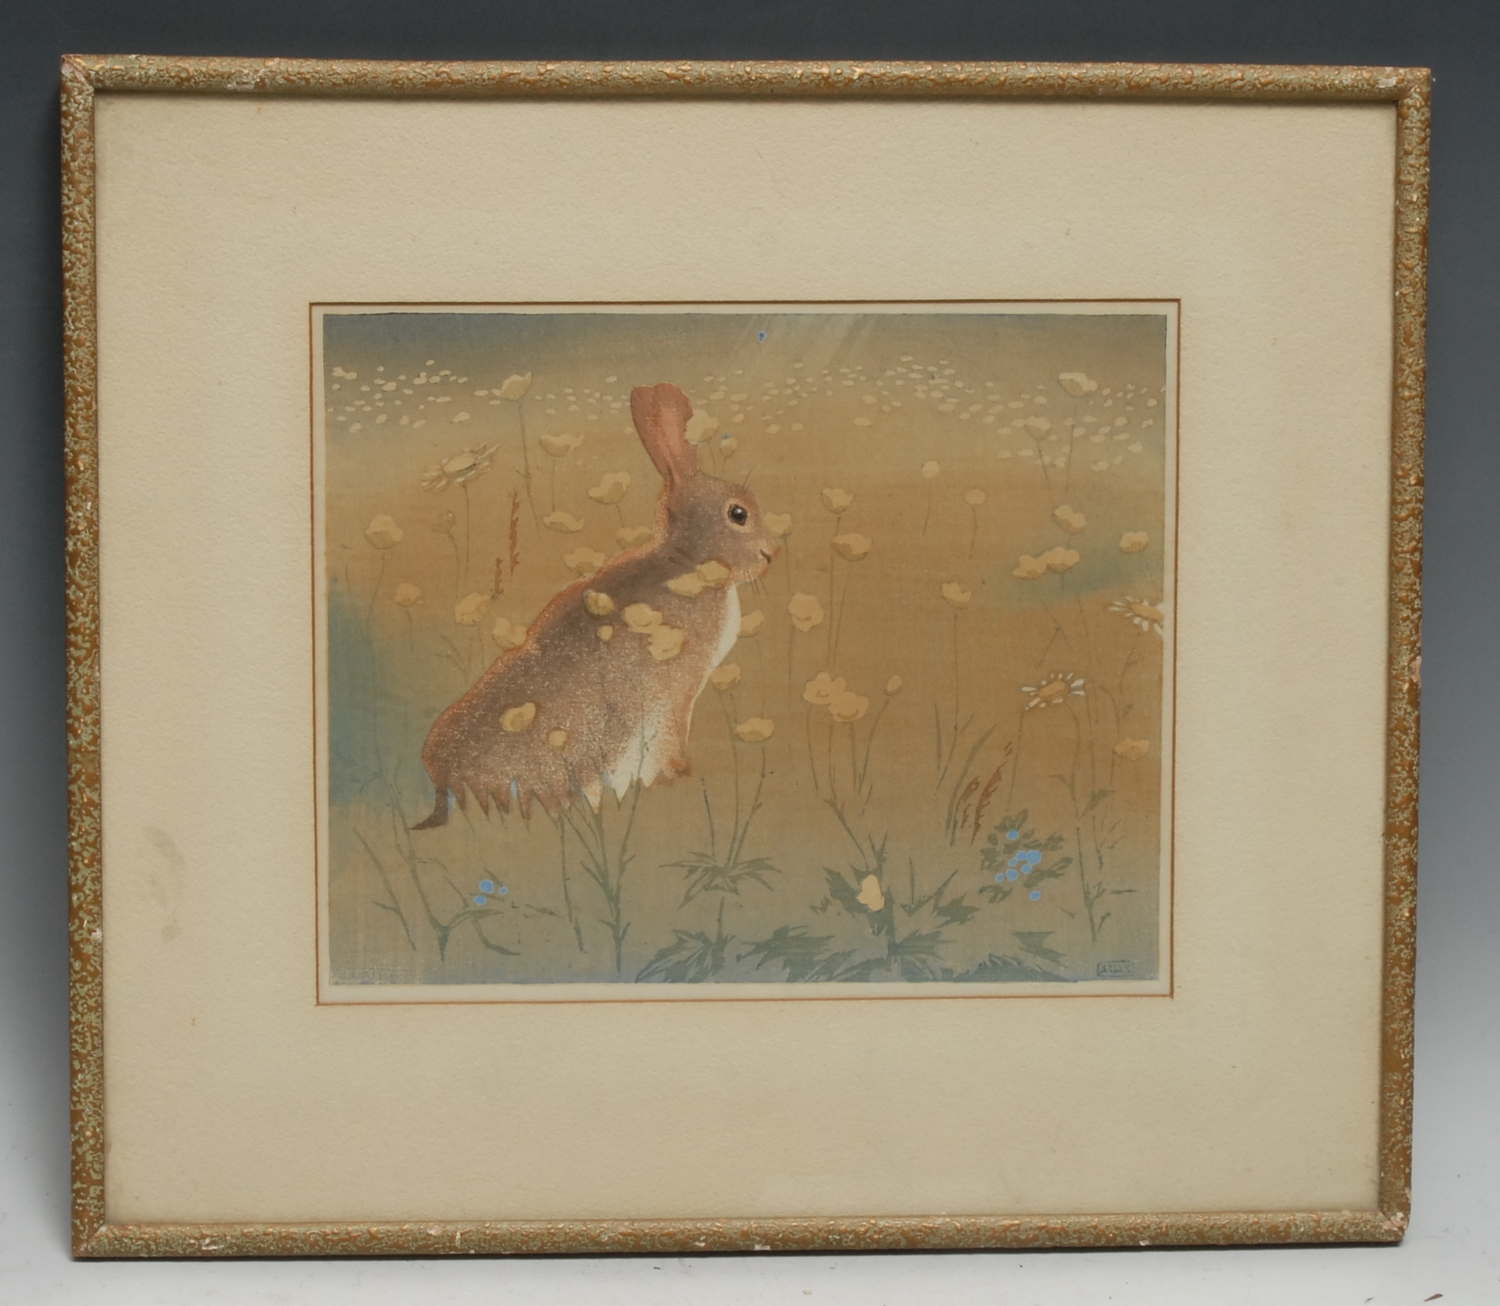 A*S, a coloured etching, of a Rabbit in a Field of Buttercups, indistinctly monogrammed and